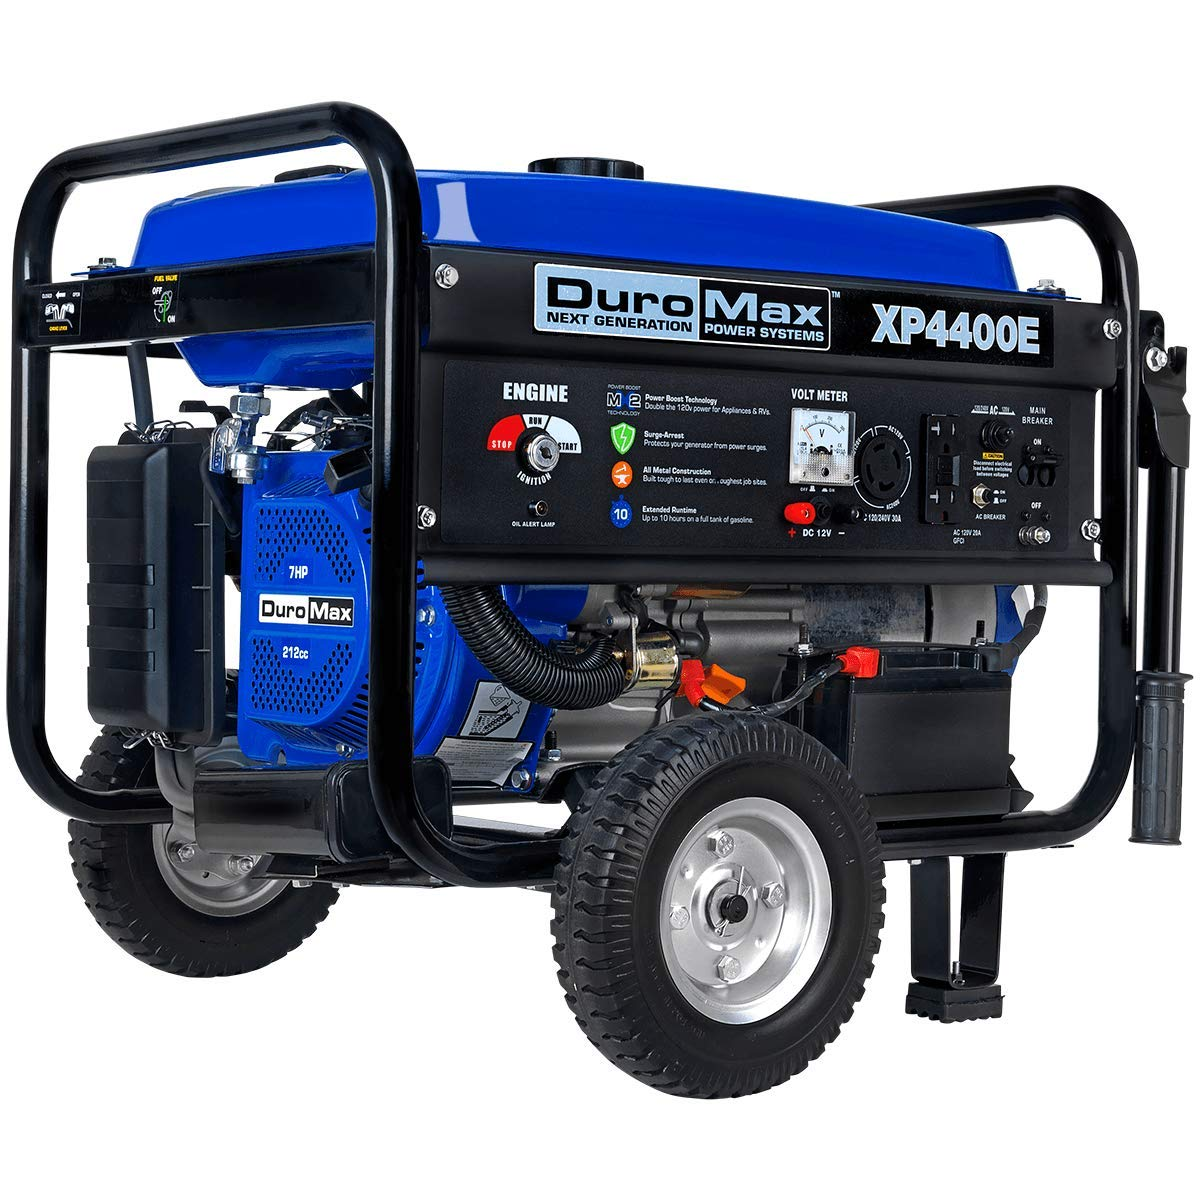 DuroMax XP4400E 4,400 Watt 7.0 HP OHV 4-Cycle Gas Powered Portable Generator with Wheel Kit and Electric Start product image